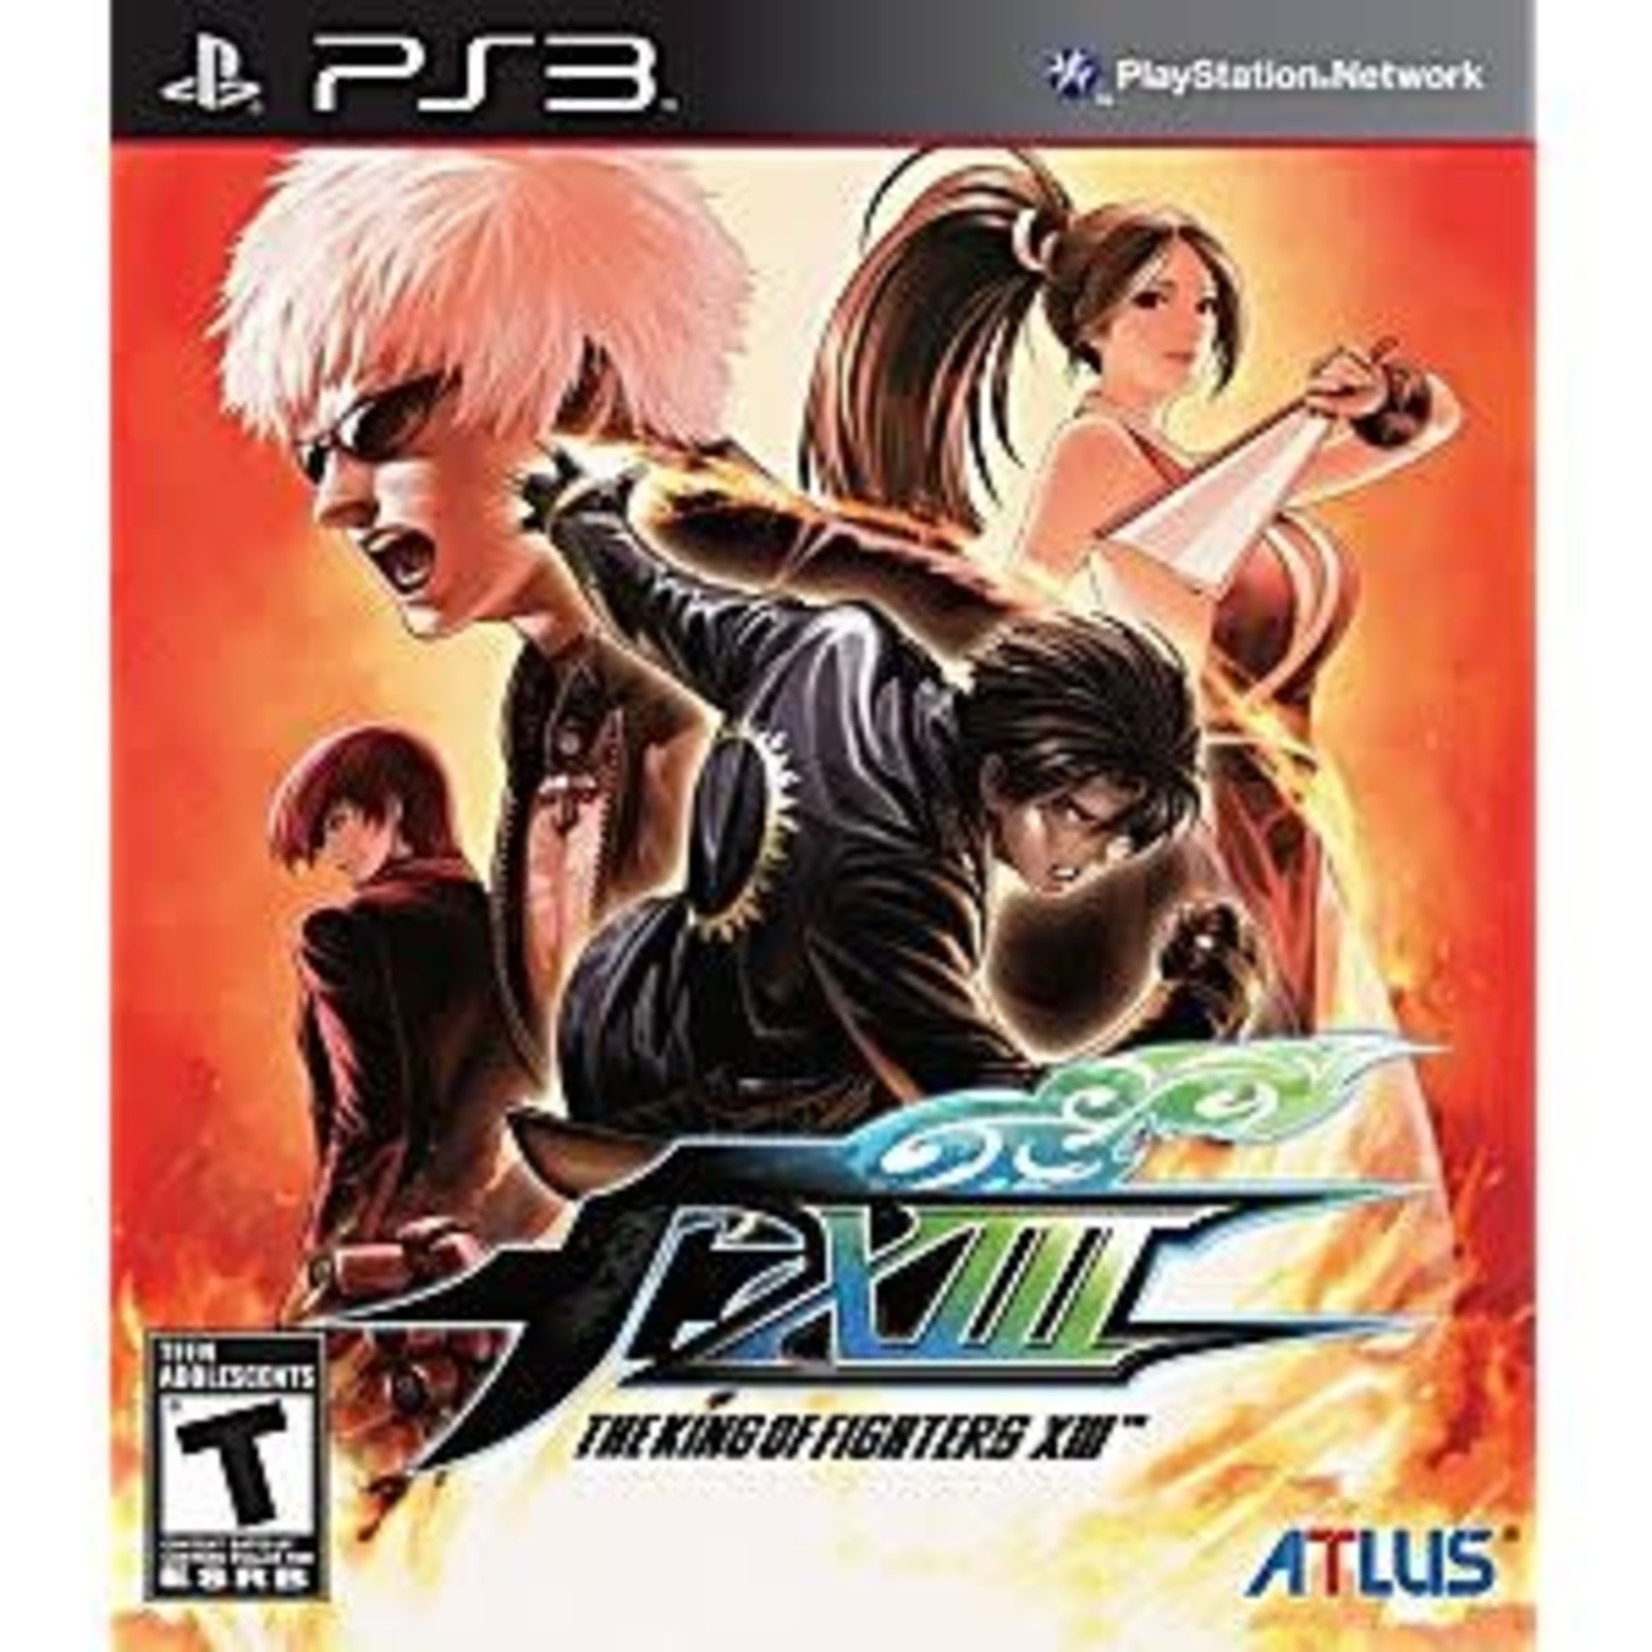 PS3U-King of Fighters XIII